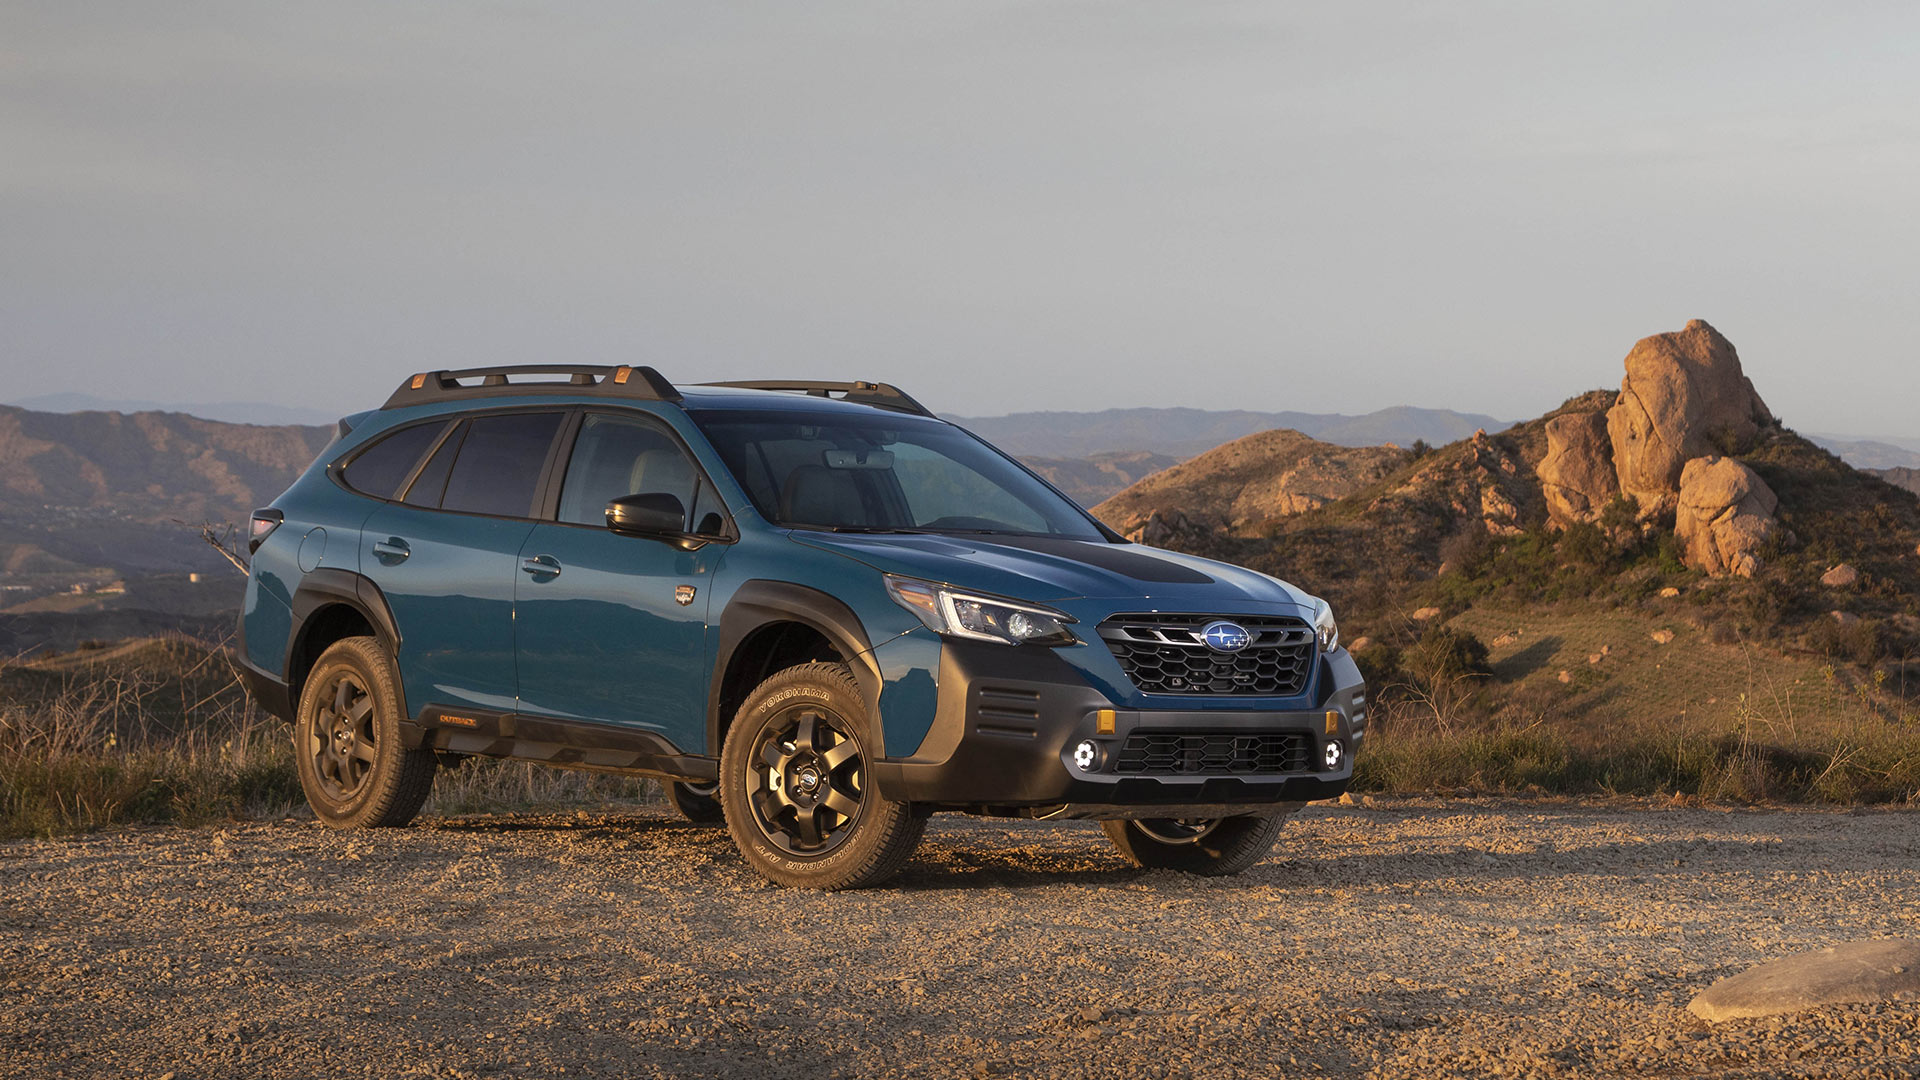 The Subaru Outback Wilderness Parked in the Outdoors